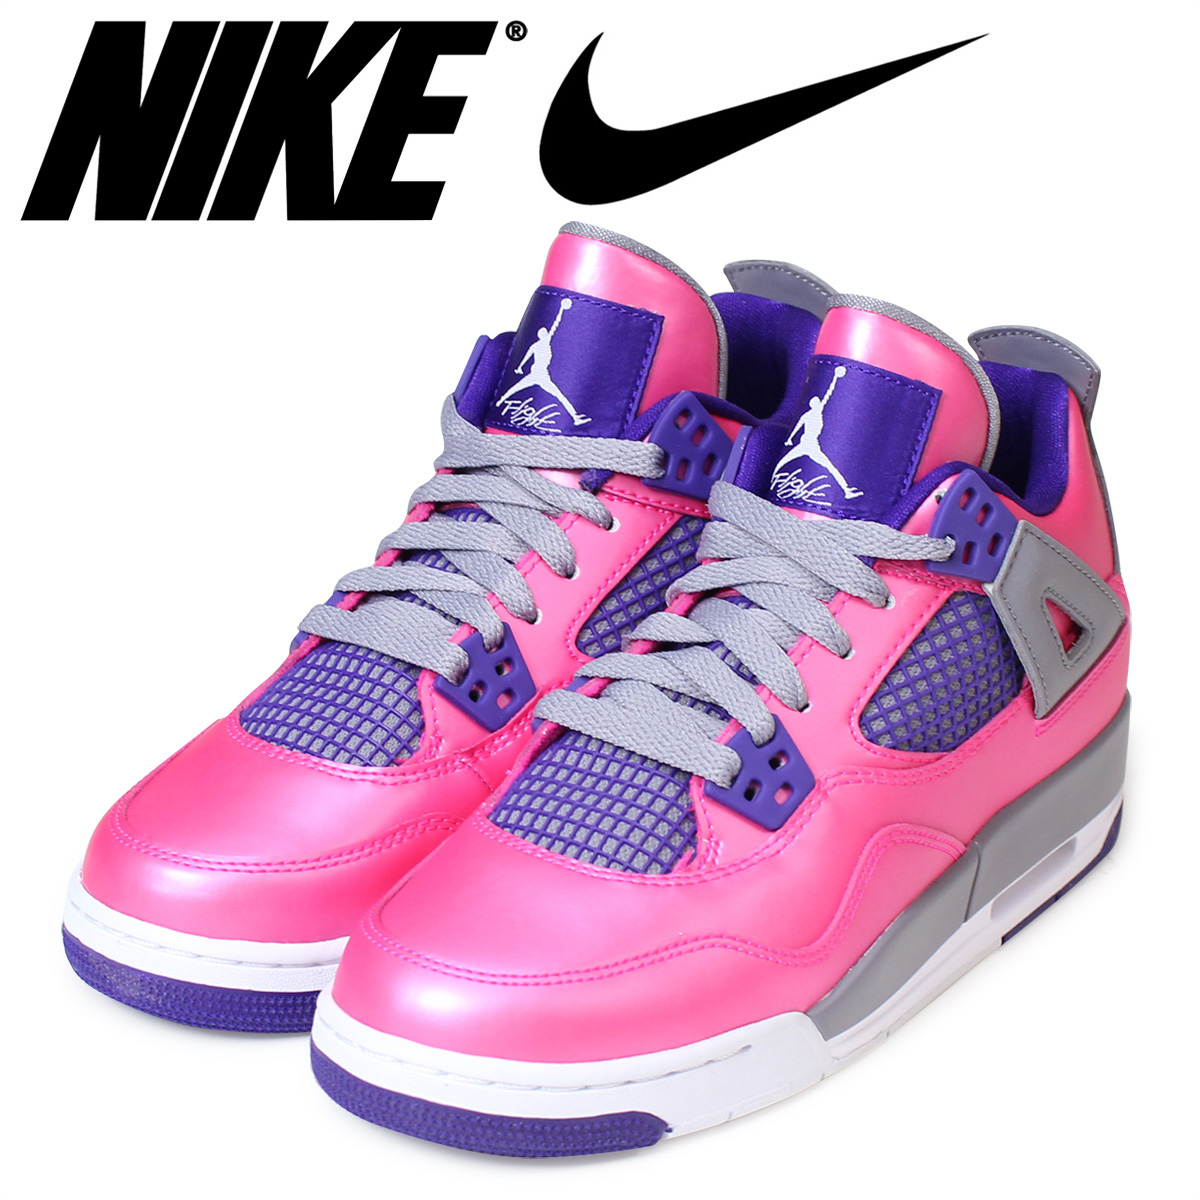 designer fashion a9b04 9befa NIKE Nike Air Jordan sneakers Lady's AIR JORDAN 4 RETRO GS Air Jordan 4  nostalgic 487,724-607 shoes pink